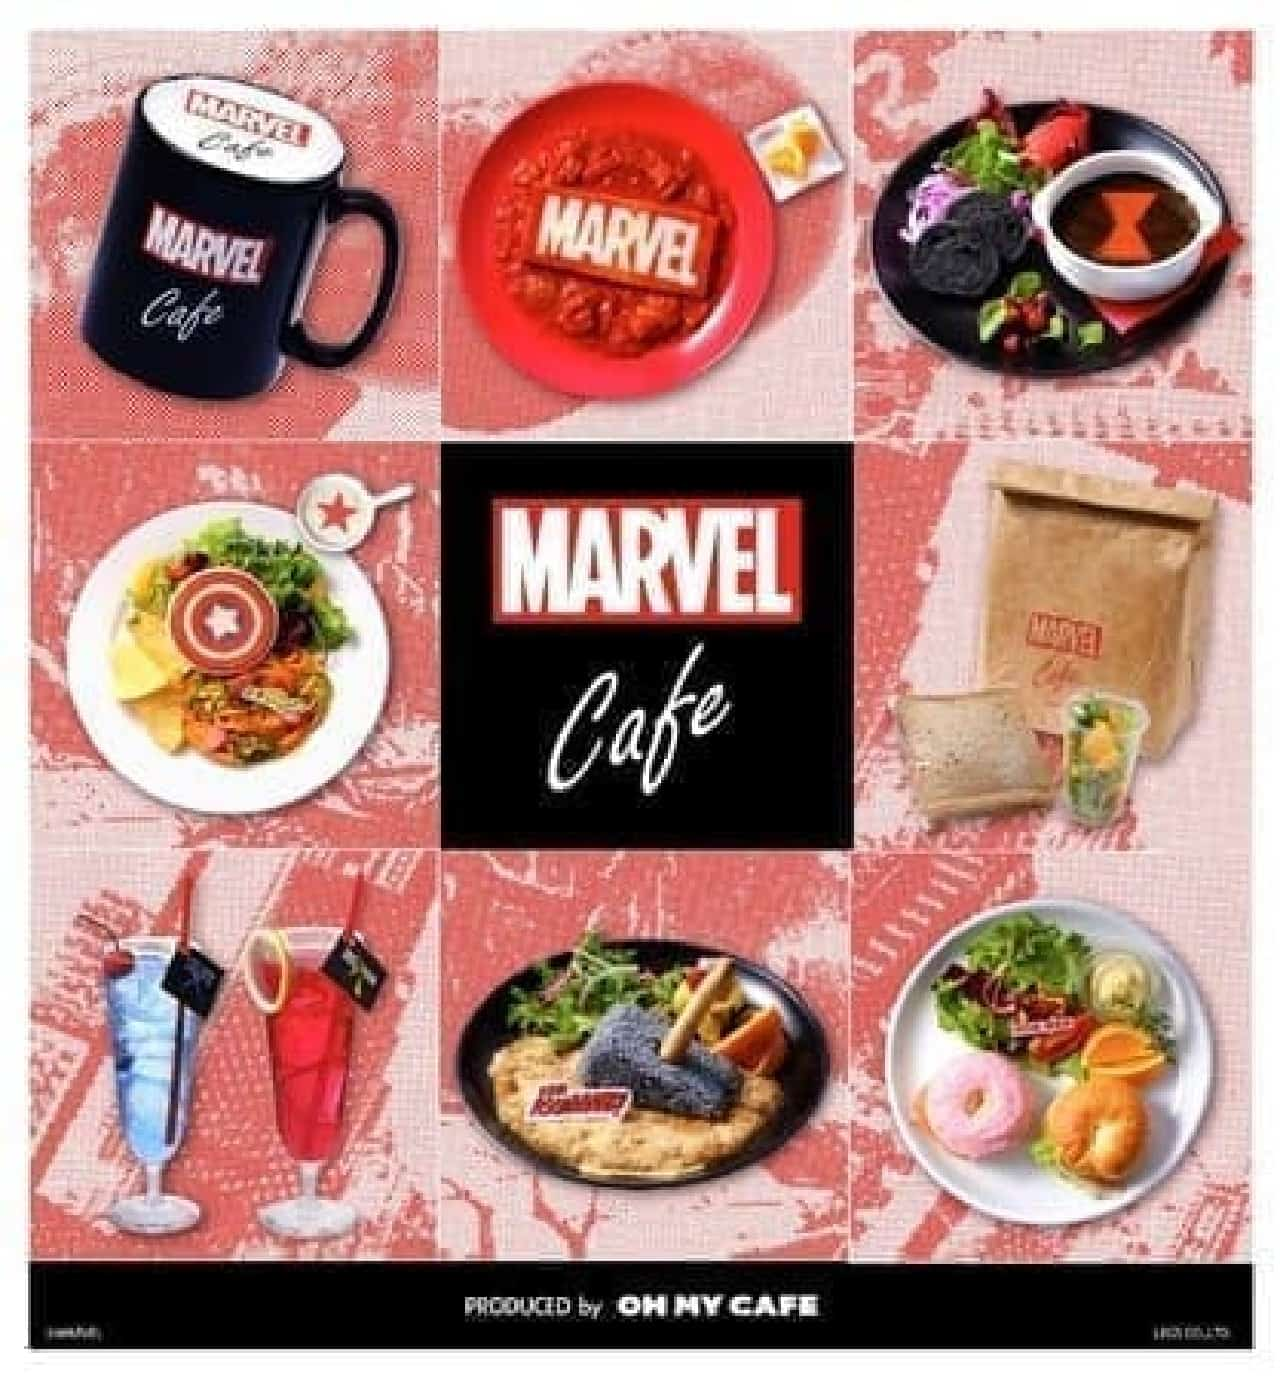 「MARVEL」cafe produced by OH MY CAFEのメニュー